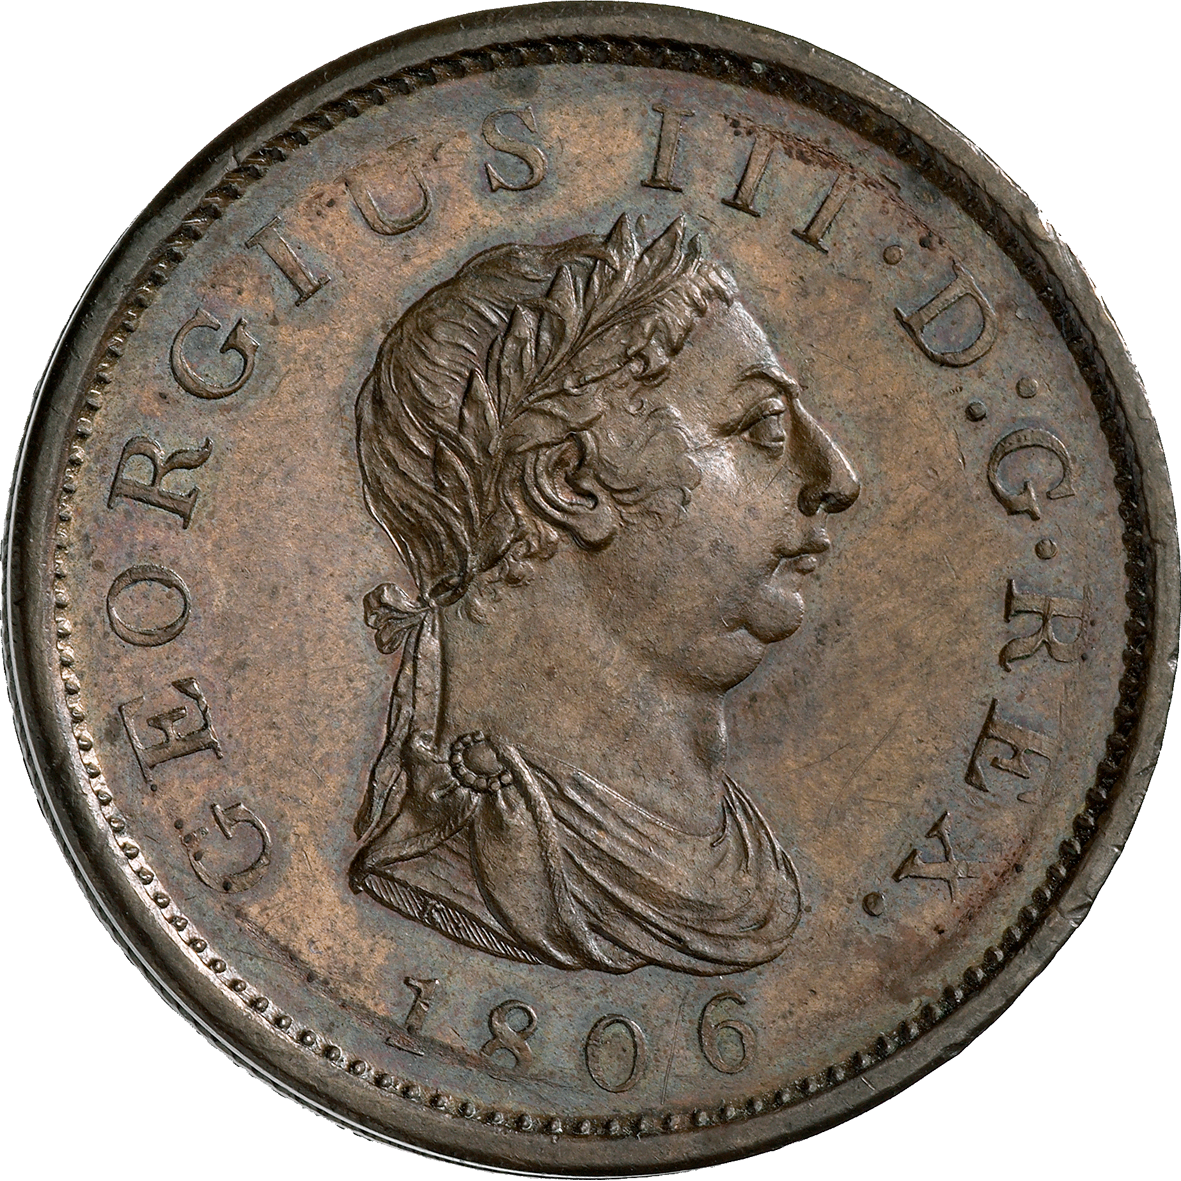 United Kingdom of Great Britain, George III, Penny 1806 (obverse)